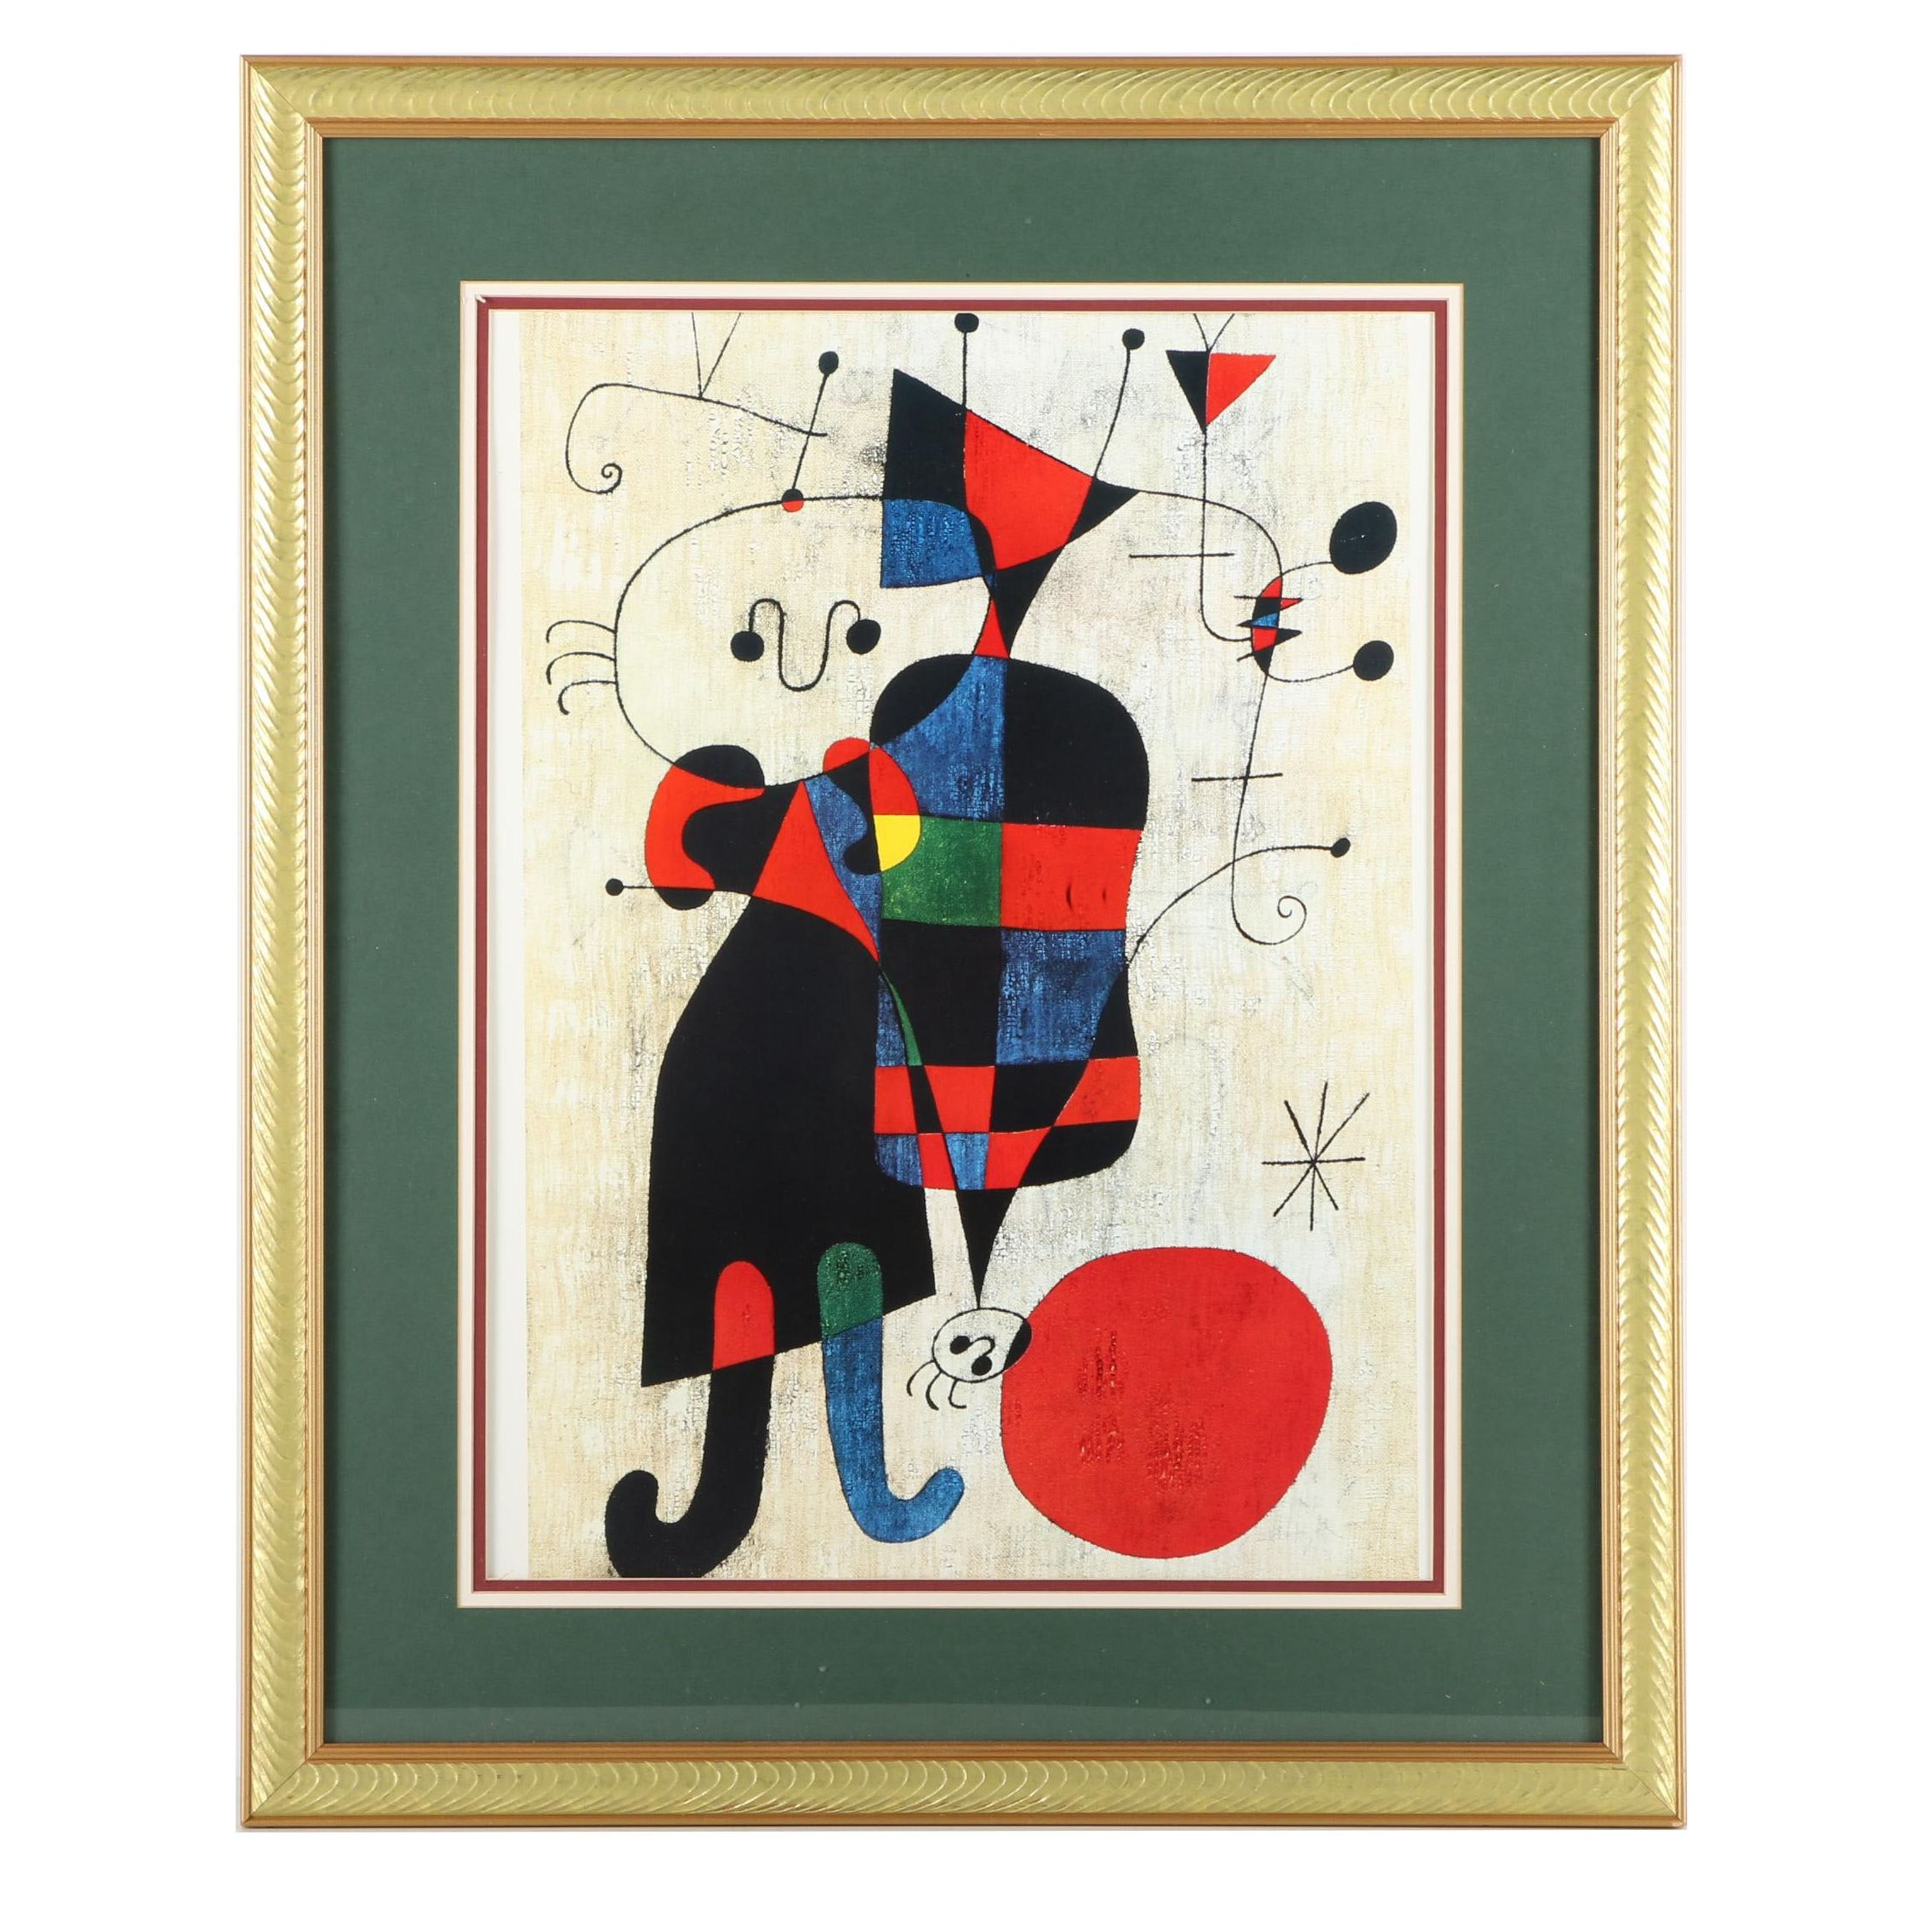 """Offset Lithograph After Joan Miró's """"Figures and Dog in Front of the Sun"""""""